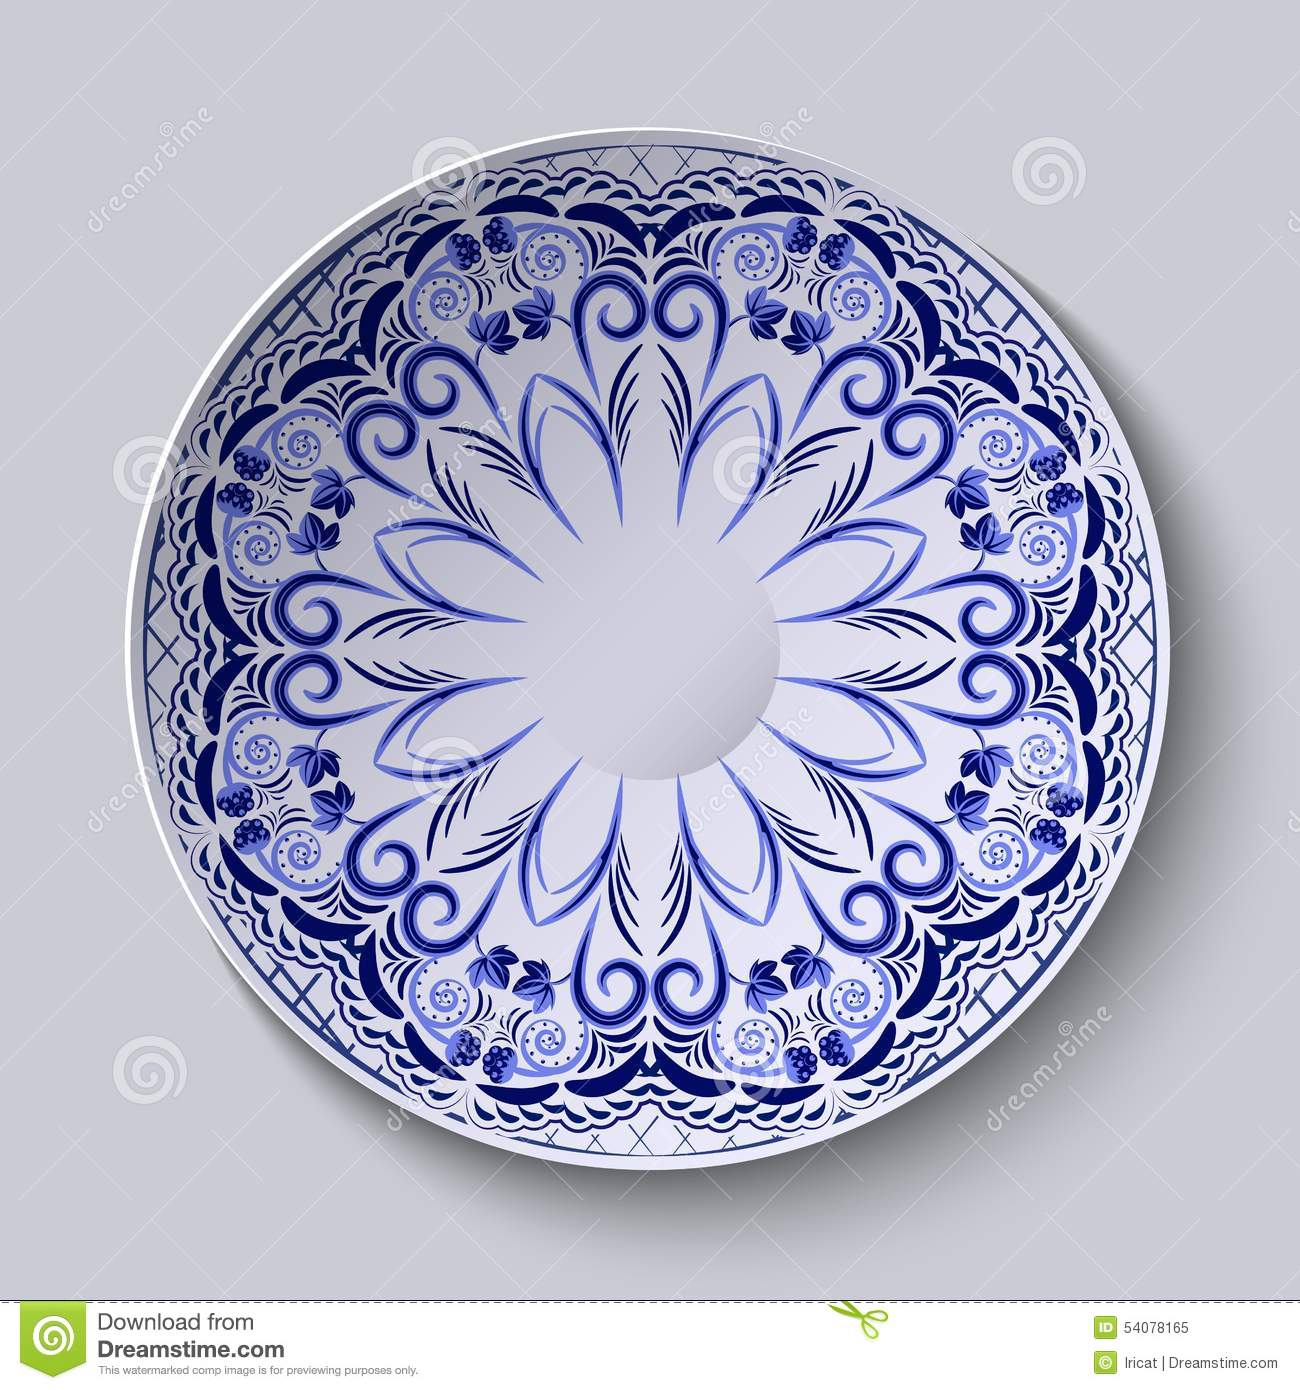 Chinese Porcelain Plates : Blue floral pattern on a round plate stylization of